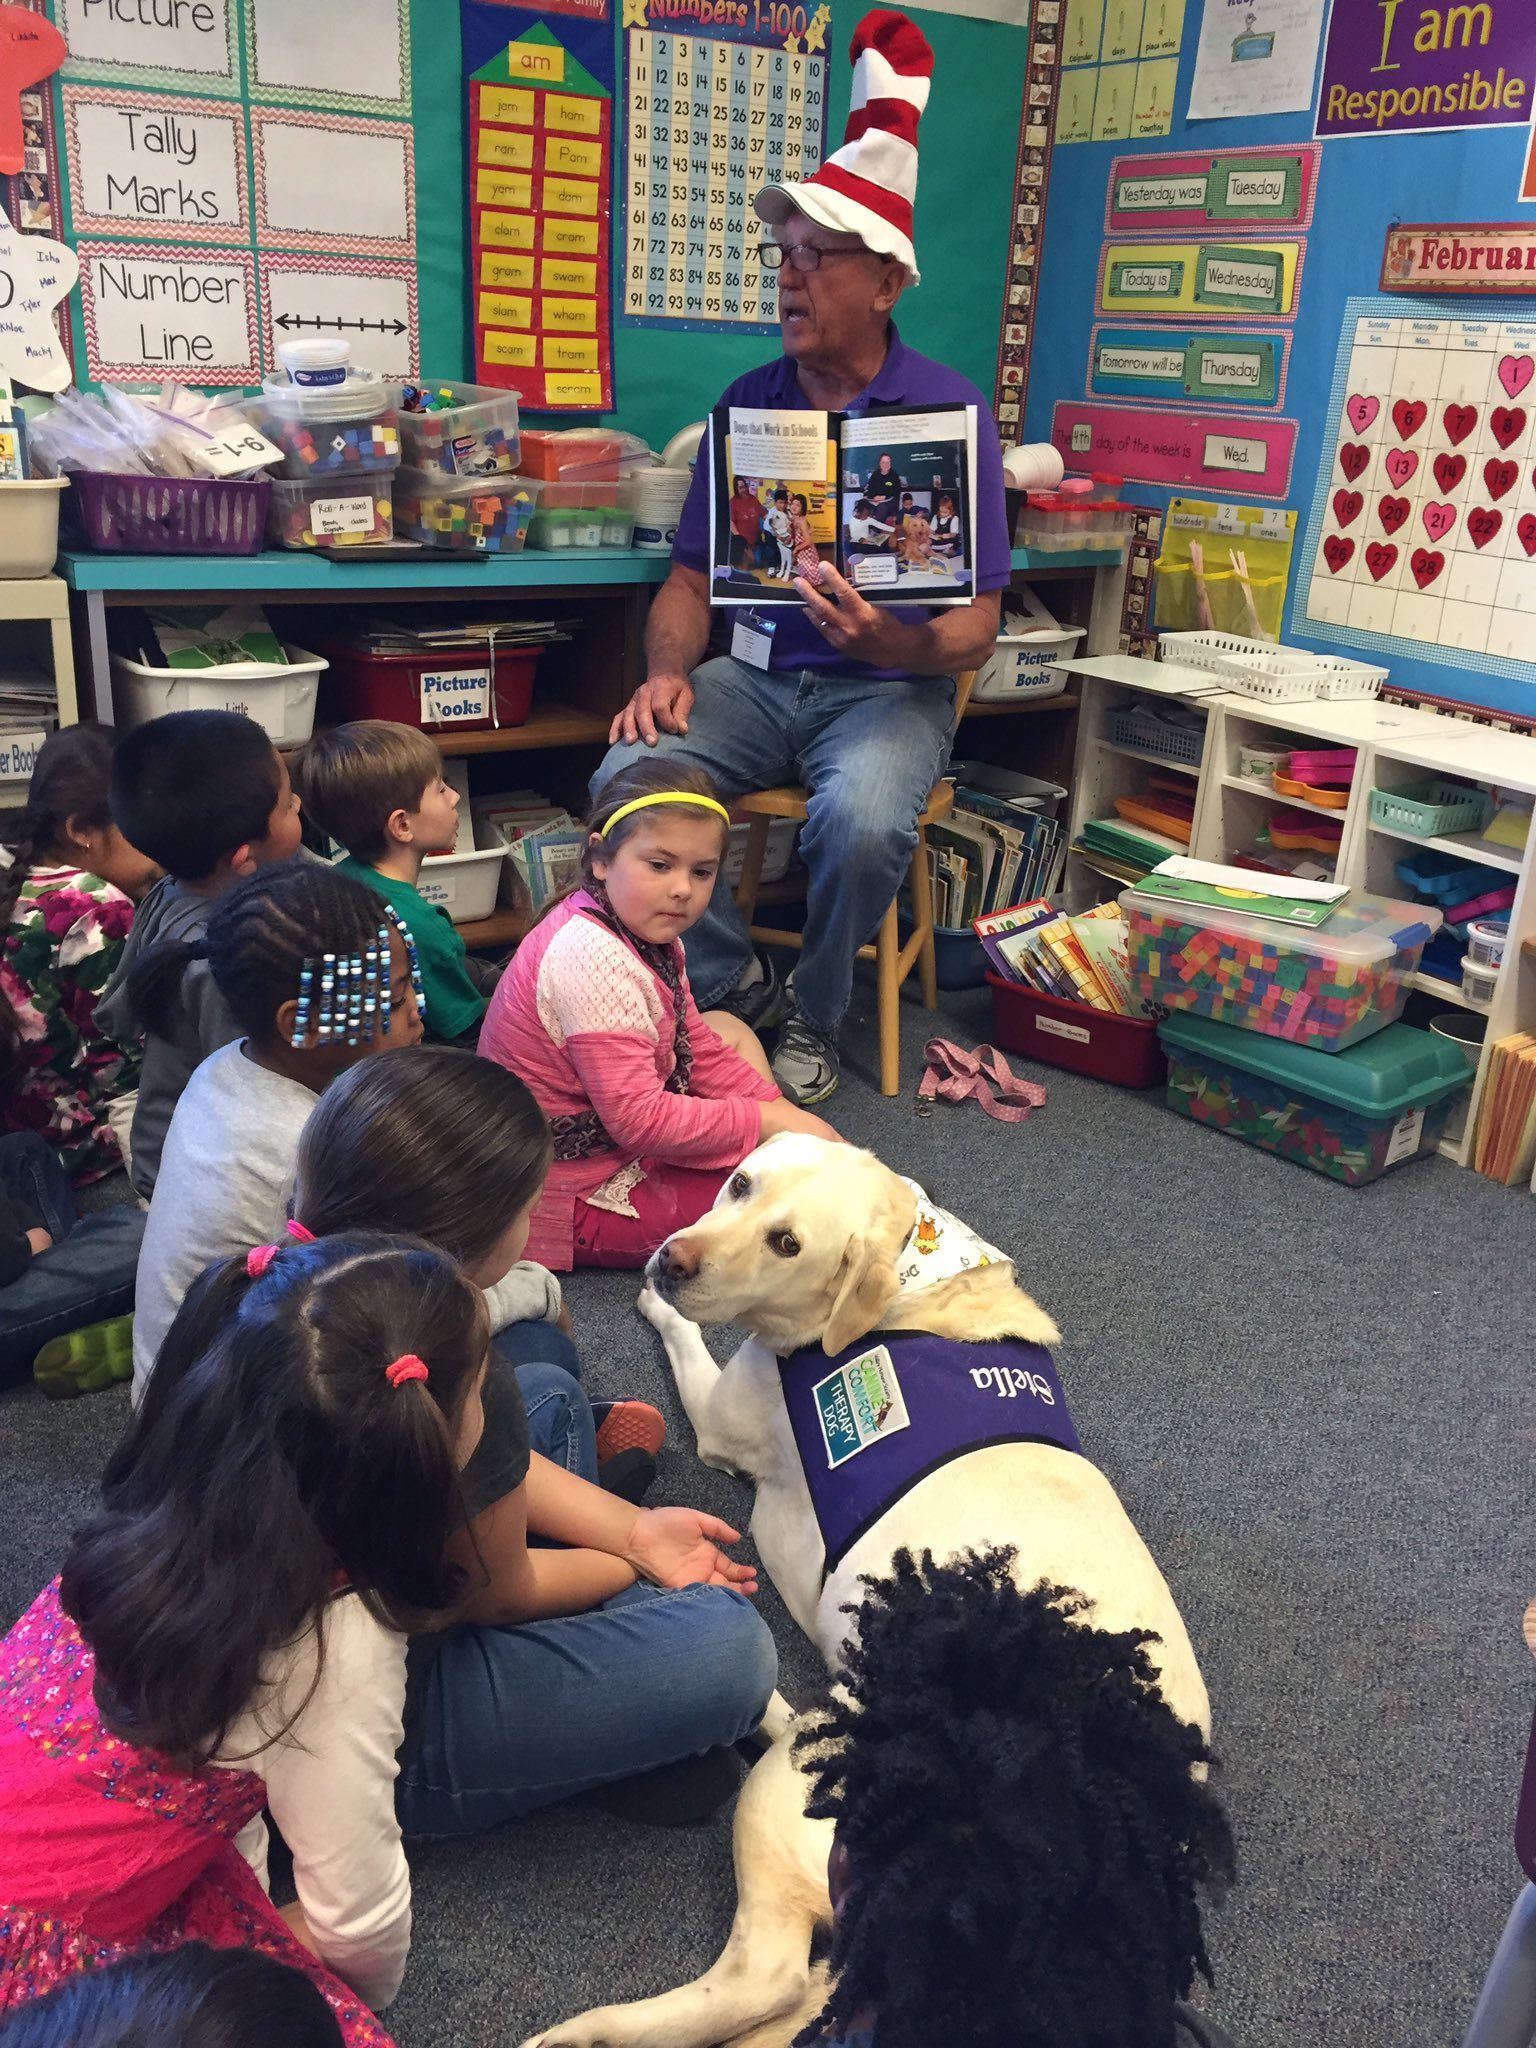 Even a therapy dog came to celebrate #ReadAcrossAmerica wth our first graders @DUSD4kids @FredPrincipal https://t.co/D6ZTmT0PVR